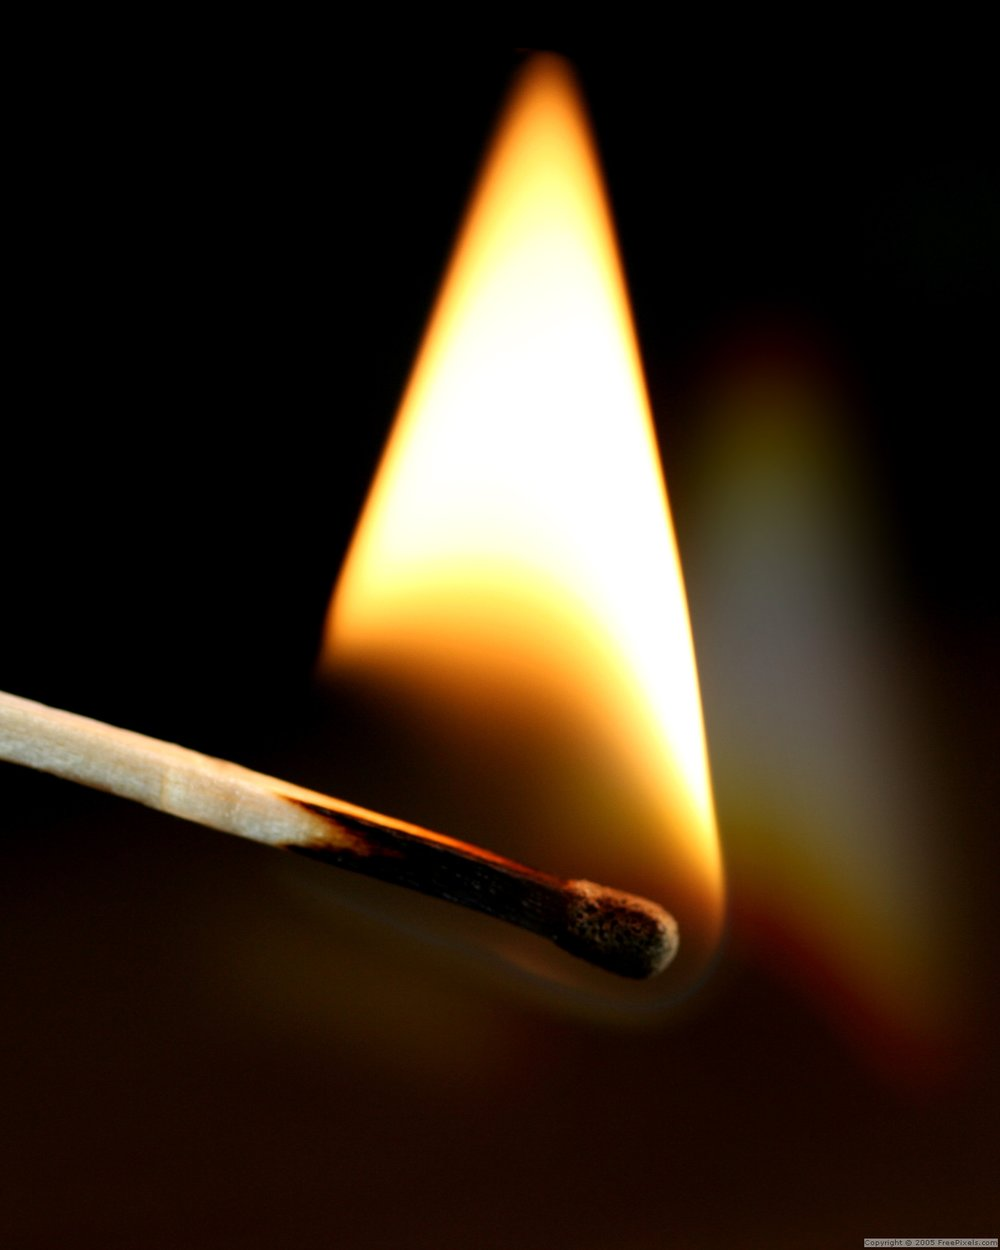 close-up of a match burning up